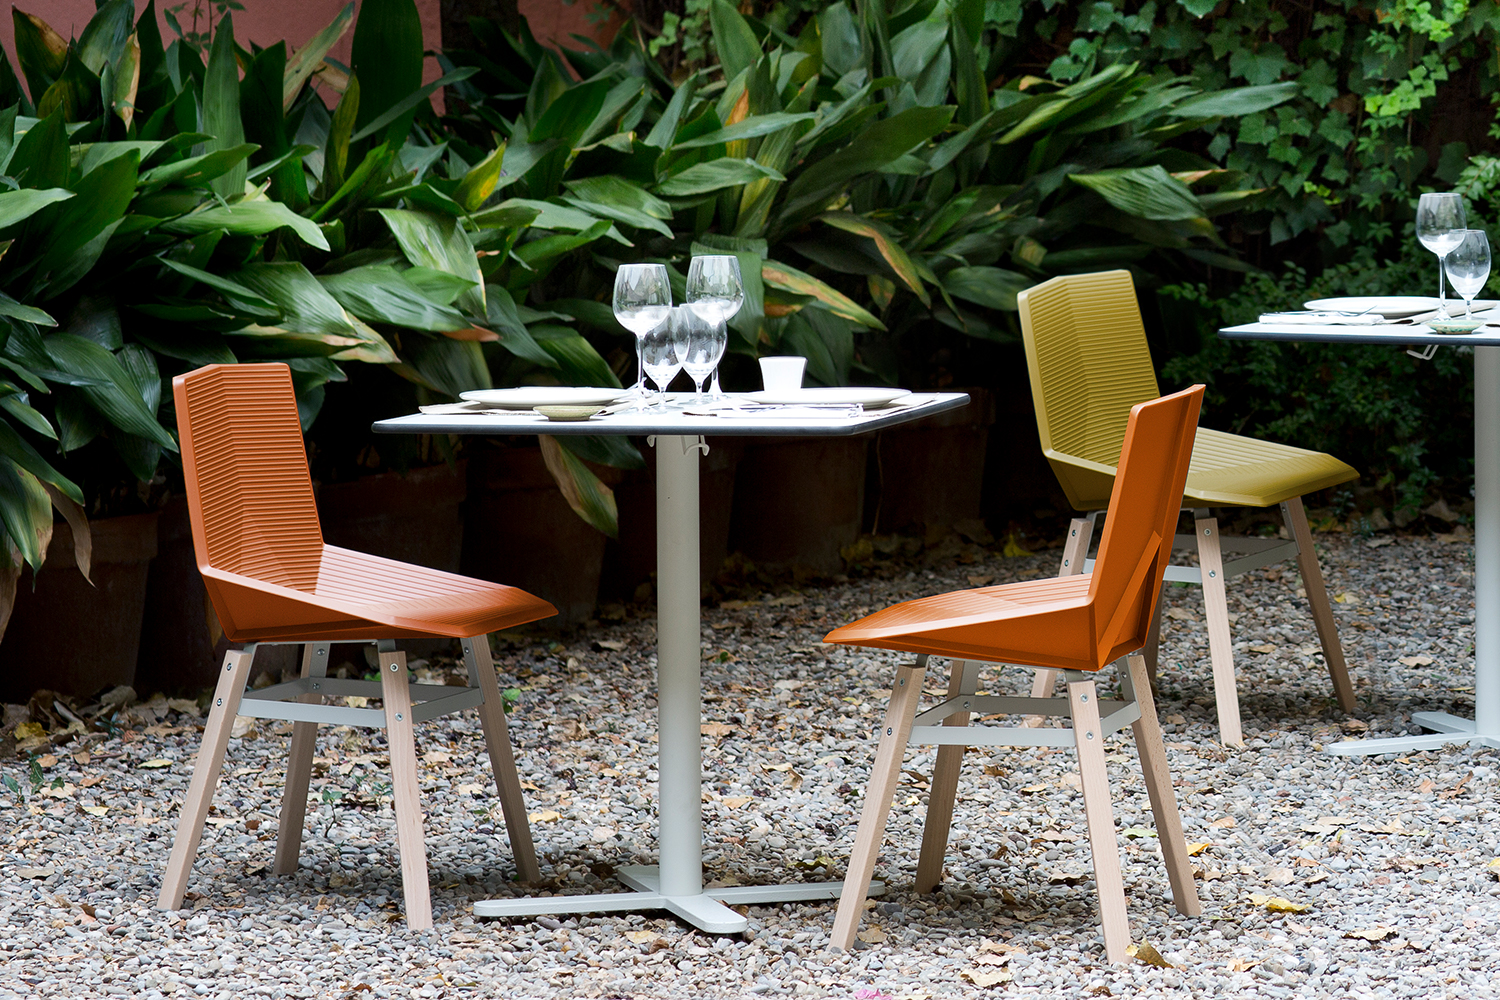 The latest sustainable furniture and lighting has arrived at KE-ZU